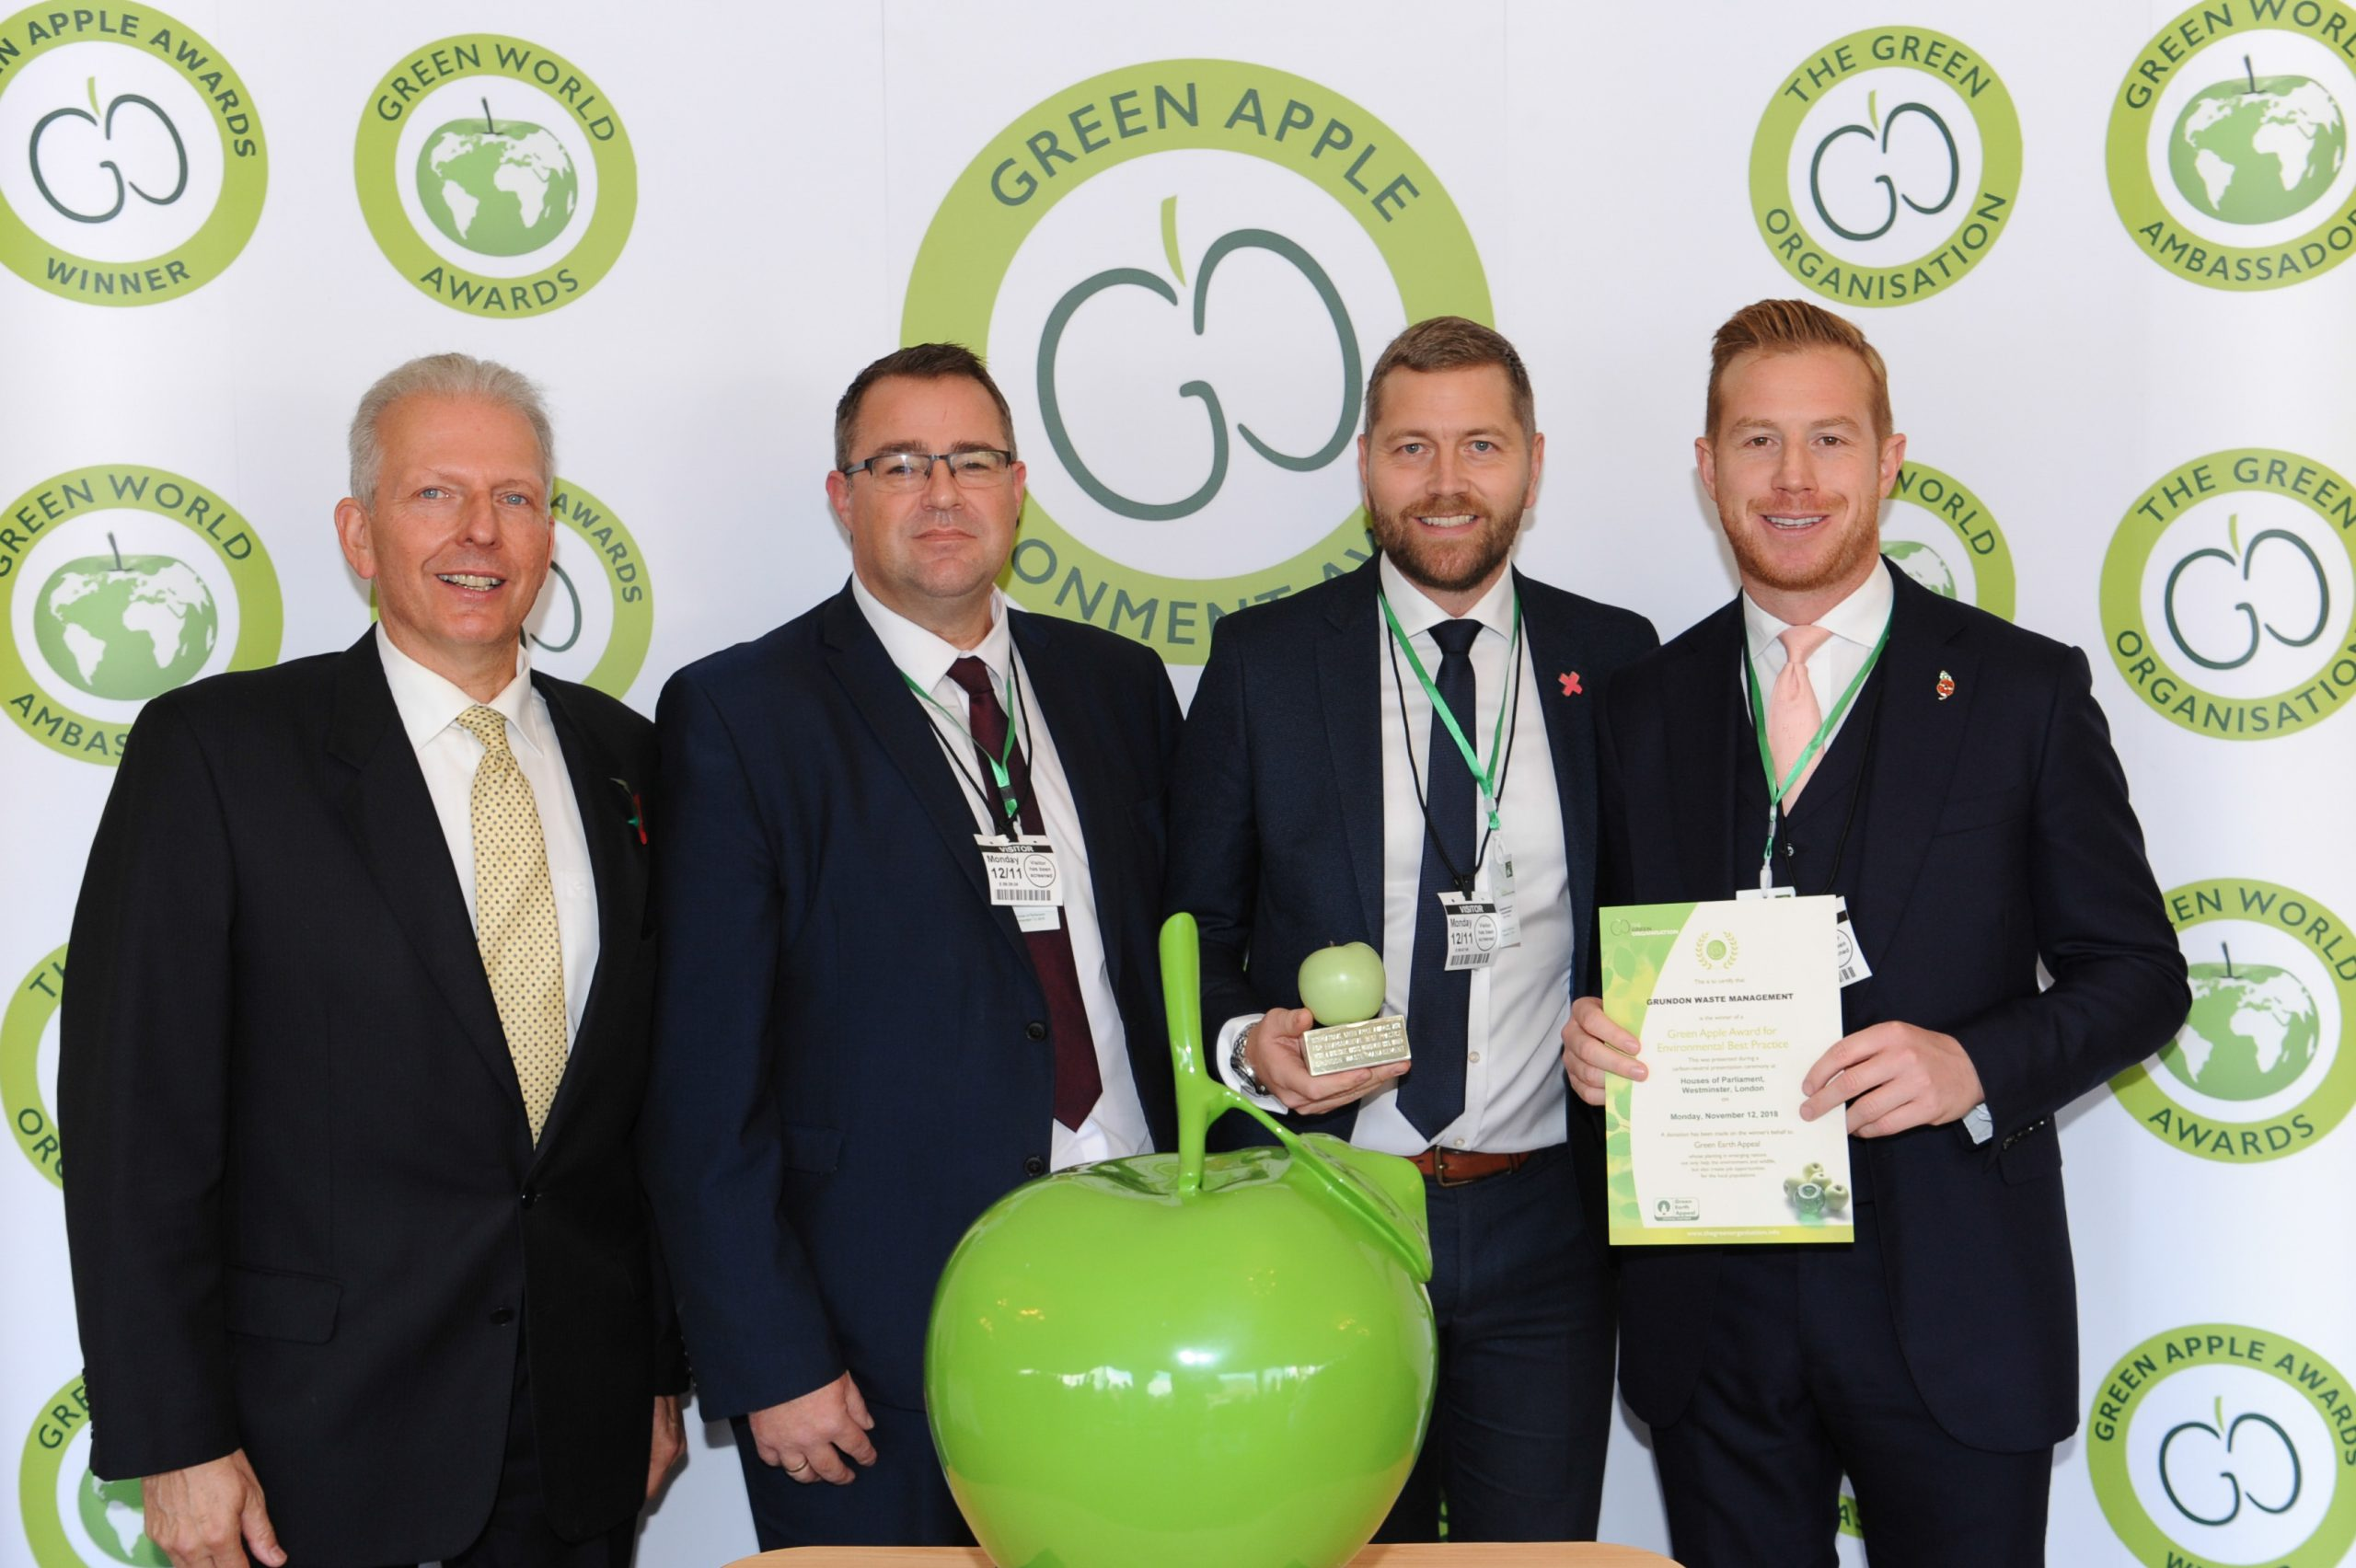 Best in class: Carl Meale, General Manager at Savills; and Stephen Hill, Head of Sales at Grundon, celebrate Xscape Milton Keynes taking top honours in the Retail and Wholesale Wastes Management category at the Green Apple Awards.